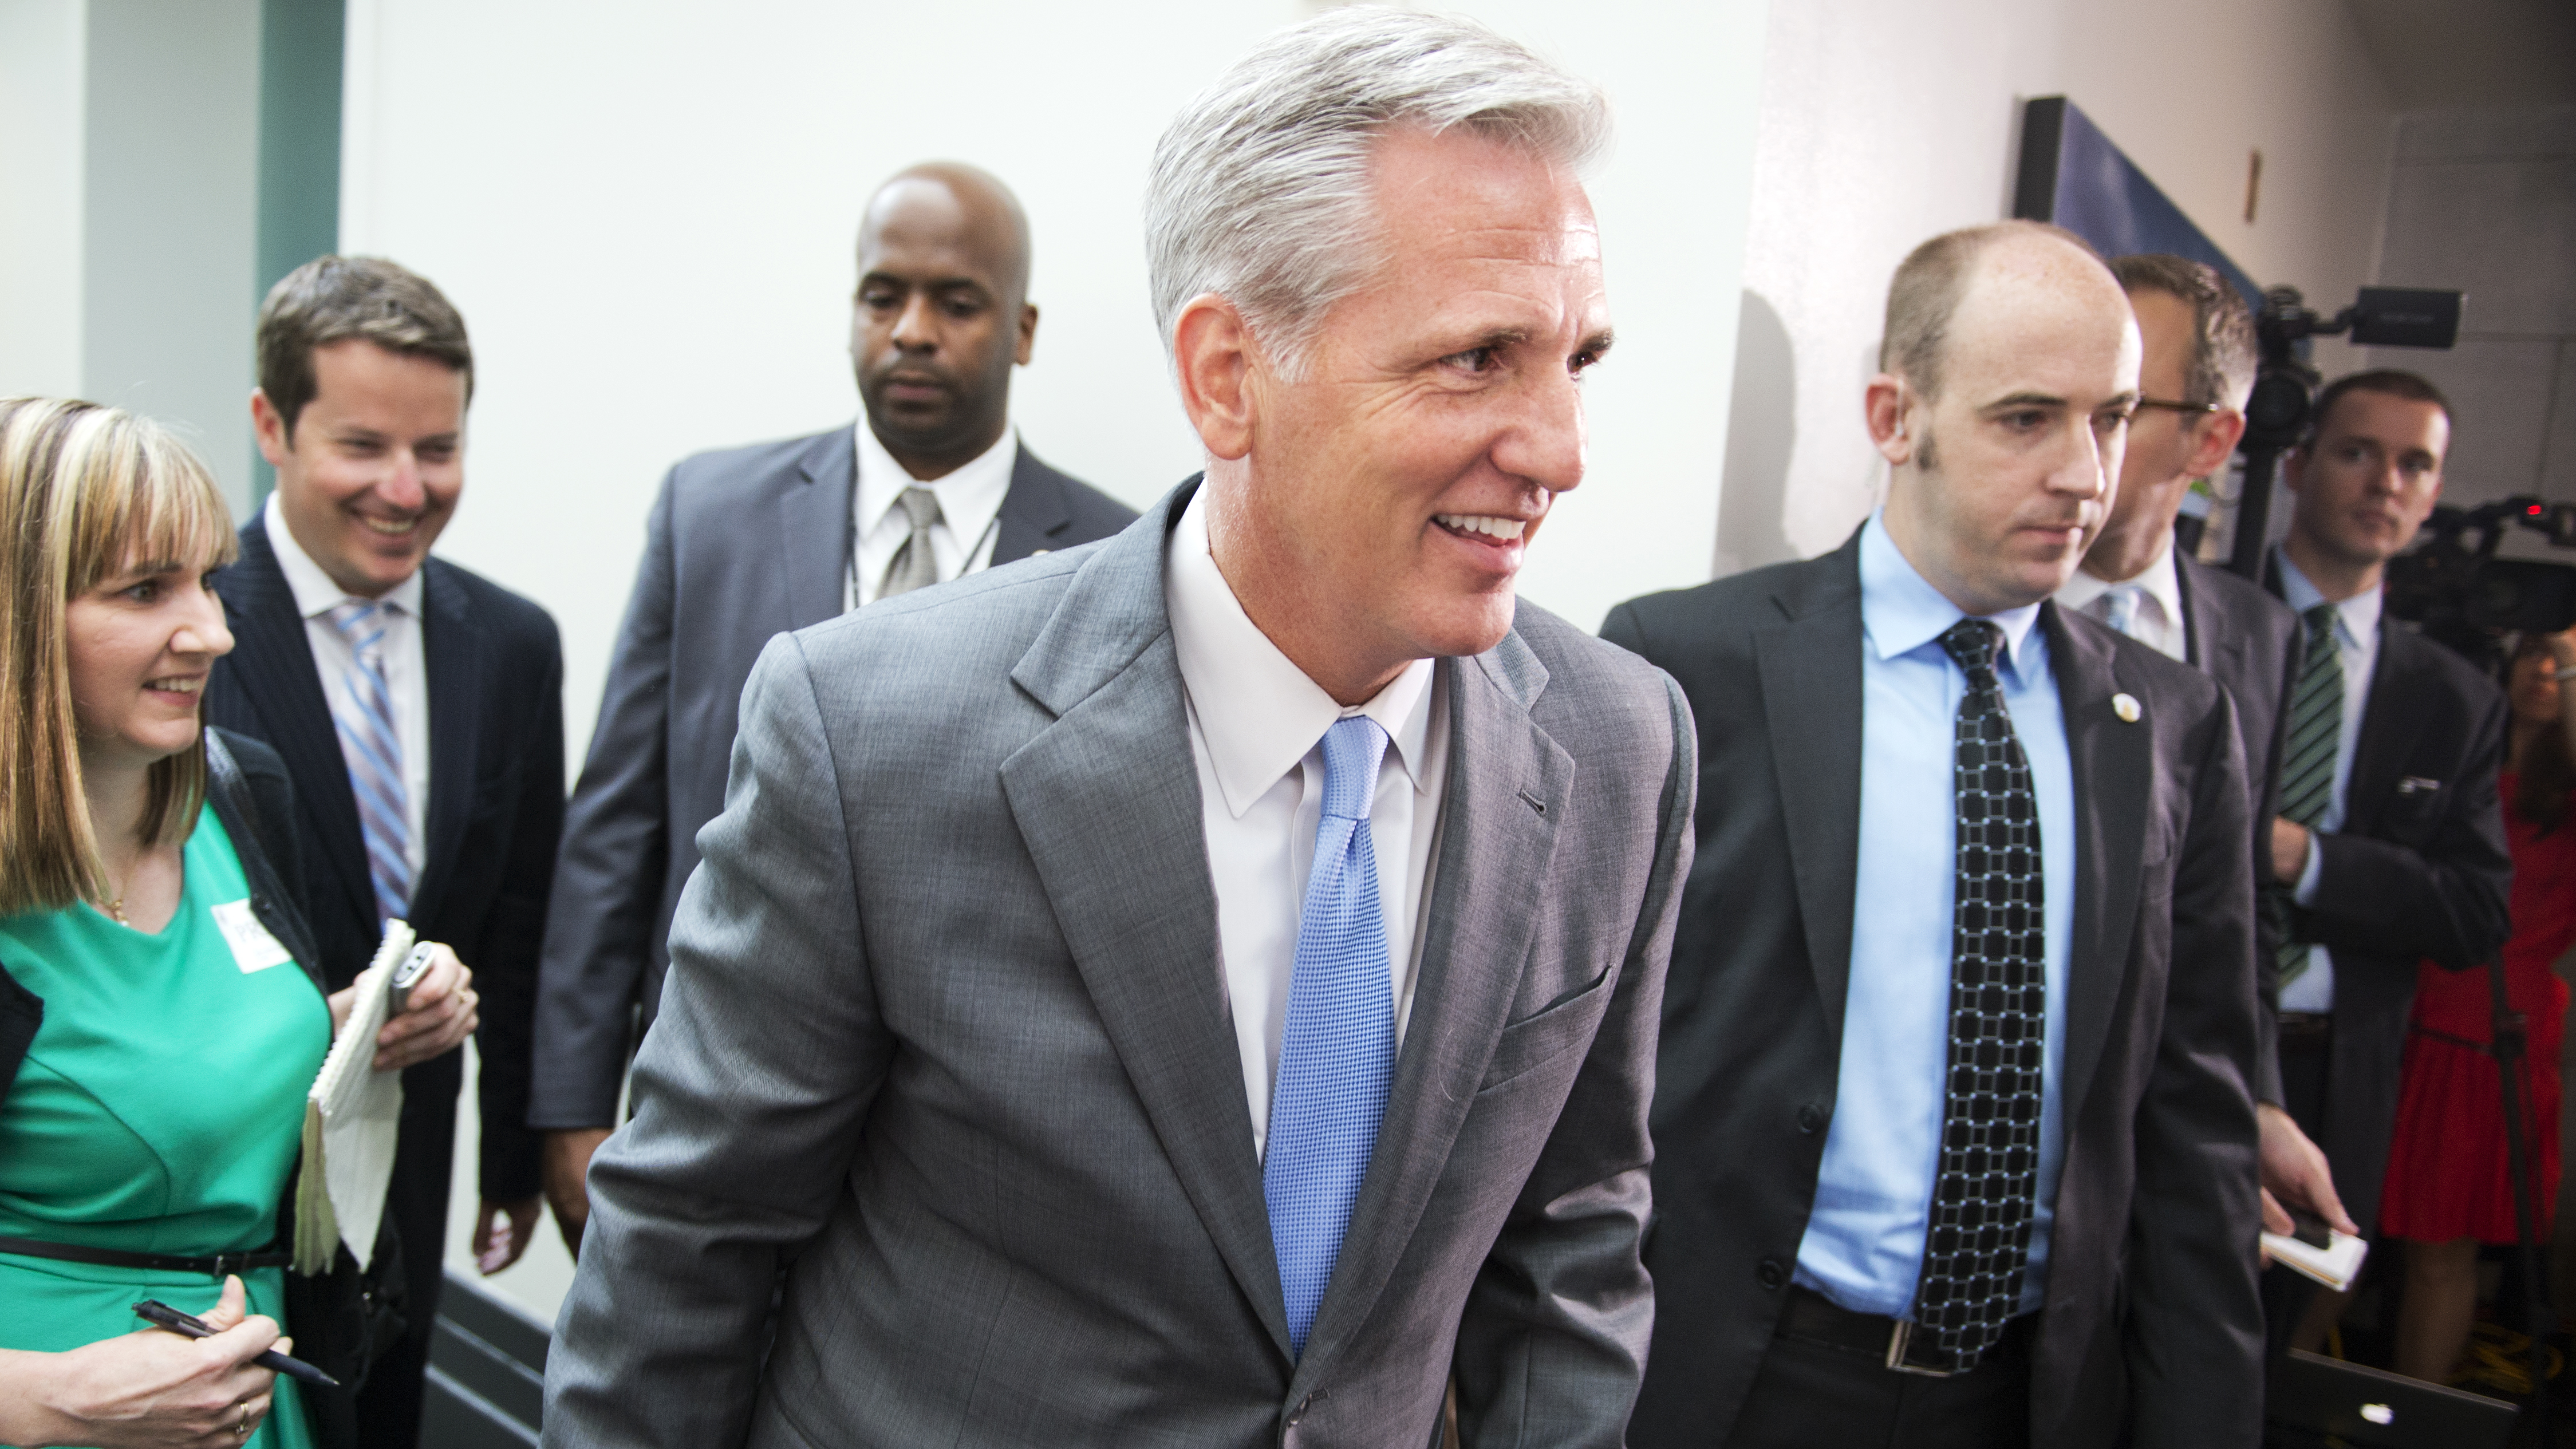 Kevin McCarthy, R-Calif., leaves a meeting of the House Republican Conference meeting in the Capitol, June 18, 2014. (Photo By Tom Williams/CQ Roll Call)